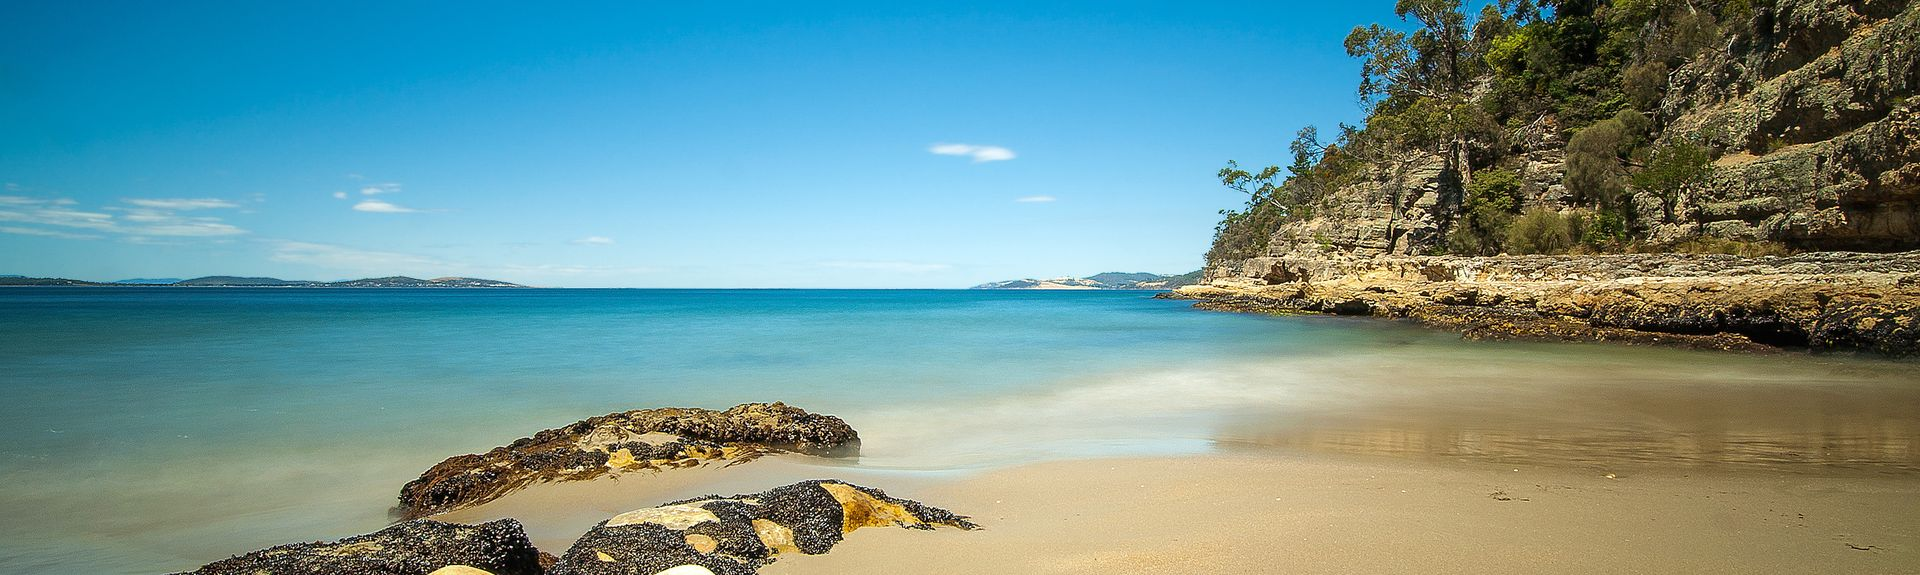 Kingston Beach, Hobart, Tasmanien, Australien